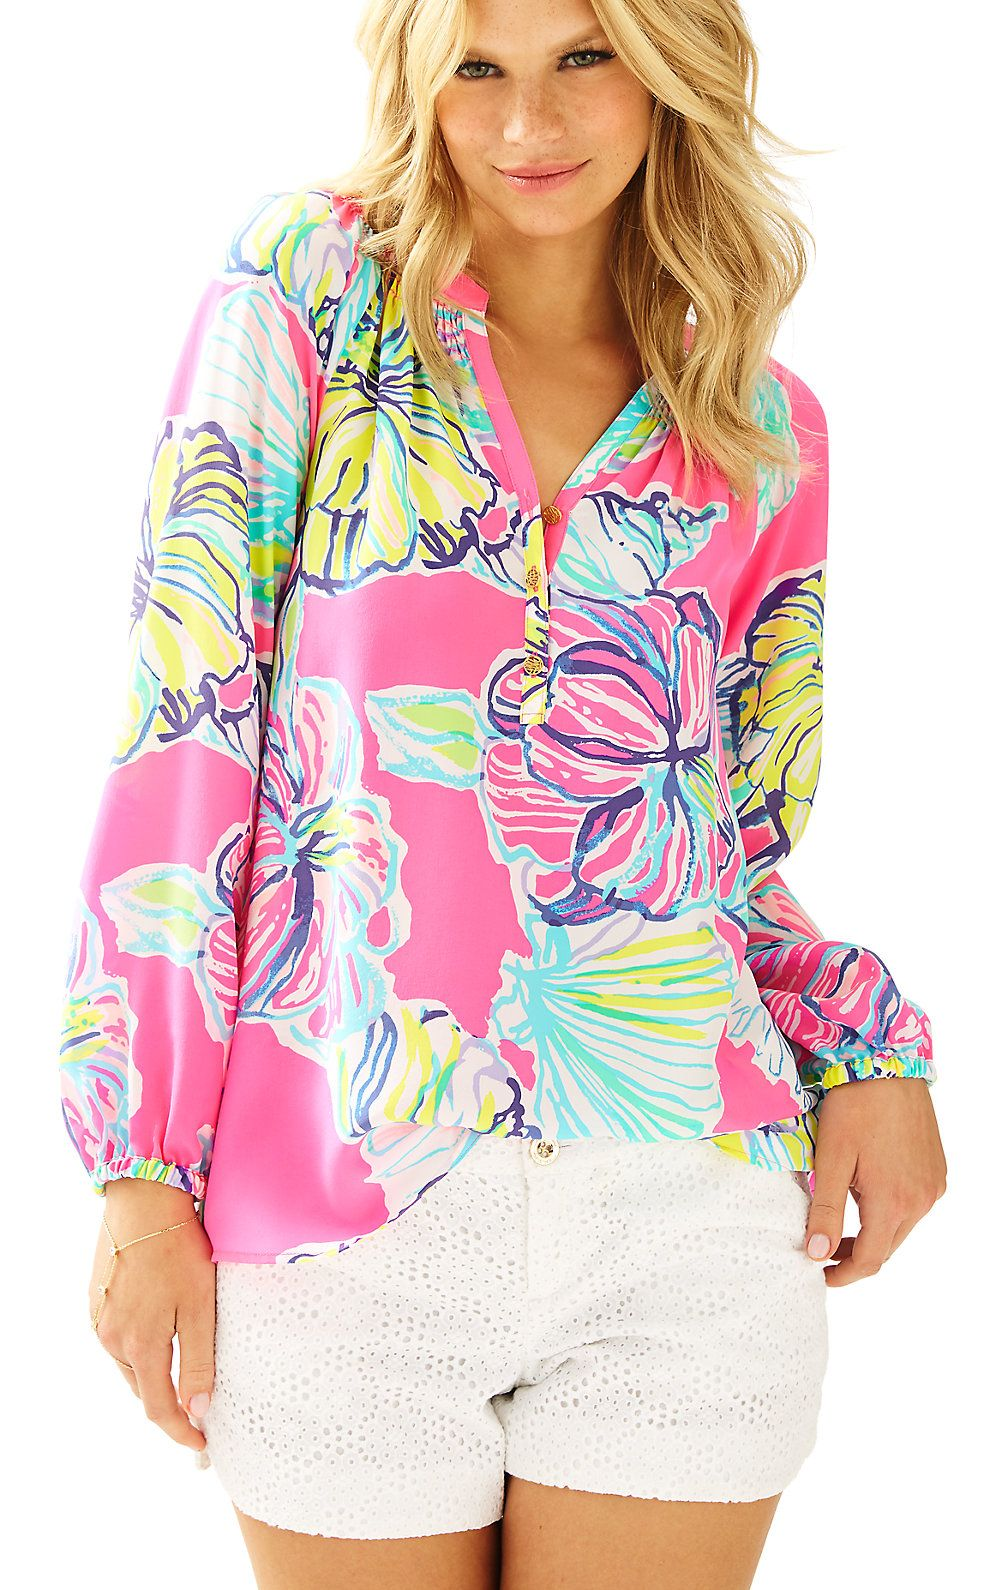 Lilly Pulitzer Womens Elsa Silk Top - Swept By The Tides